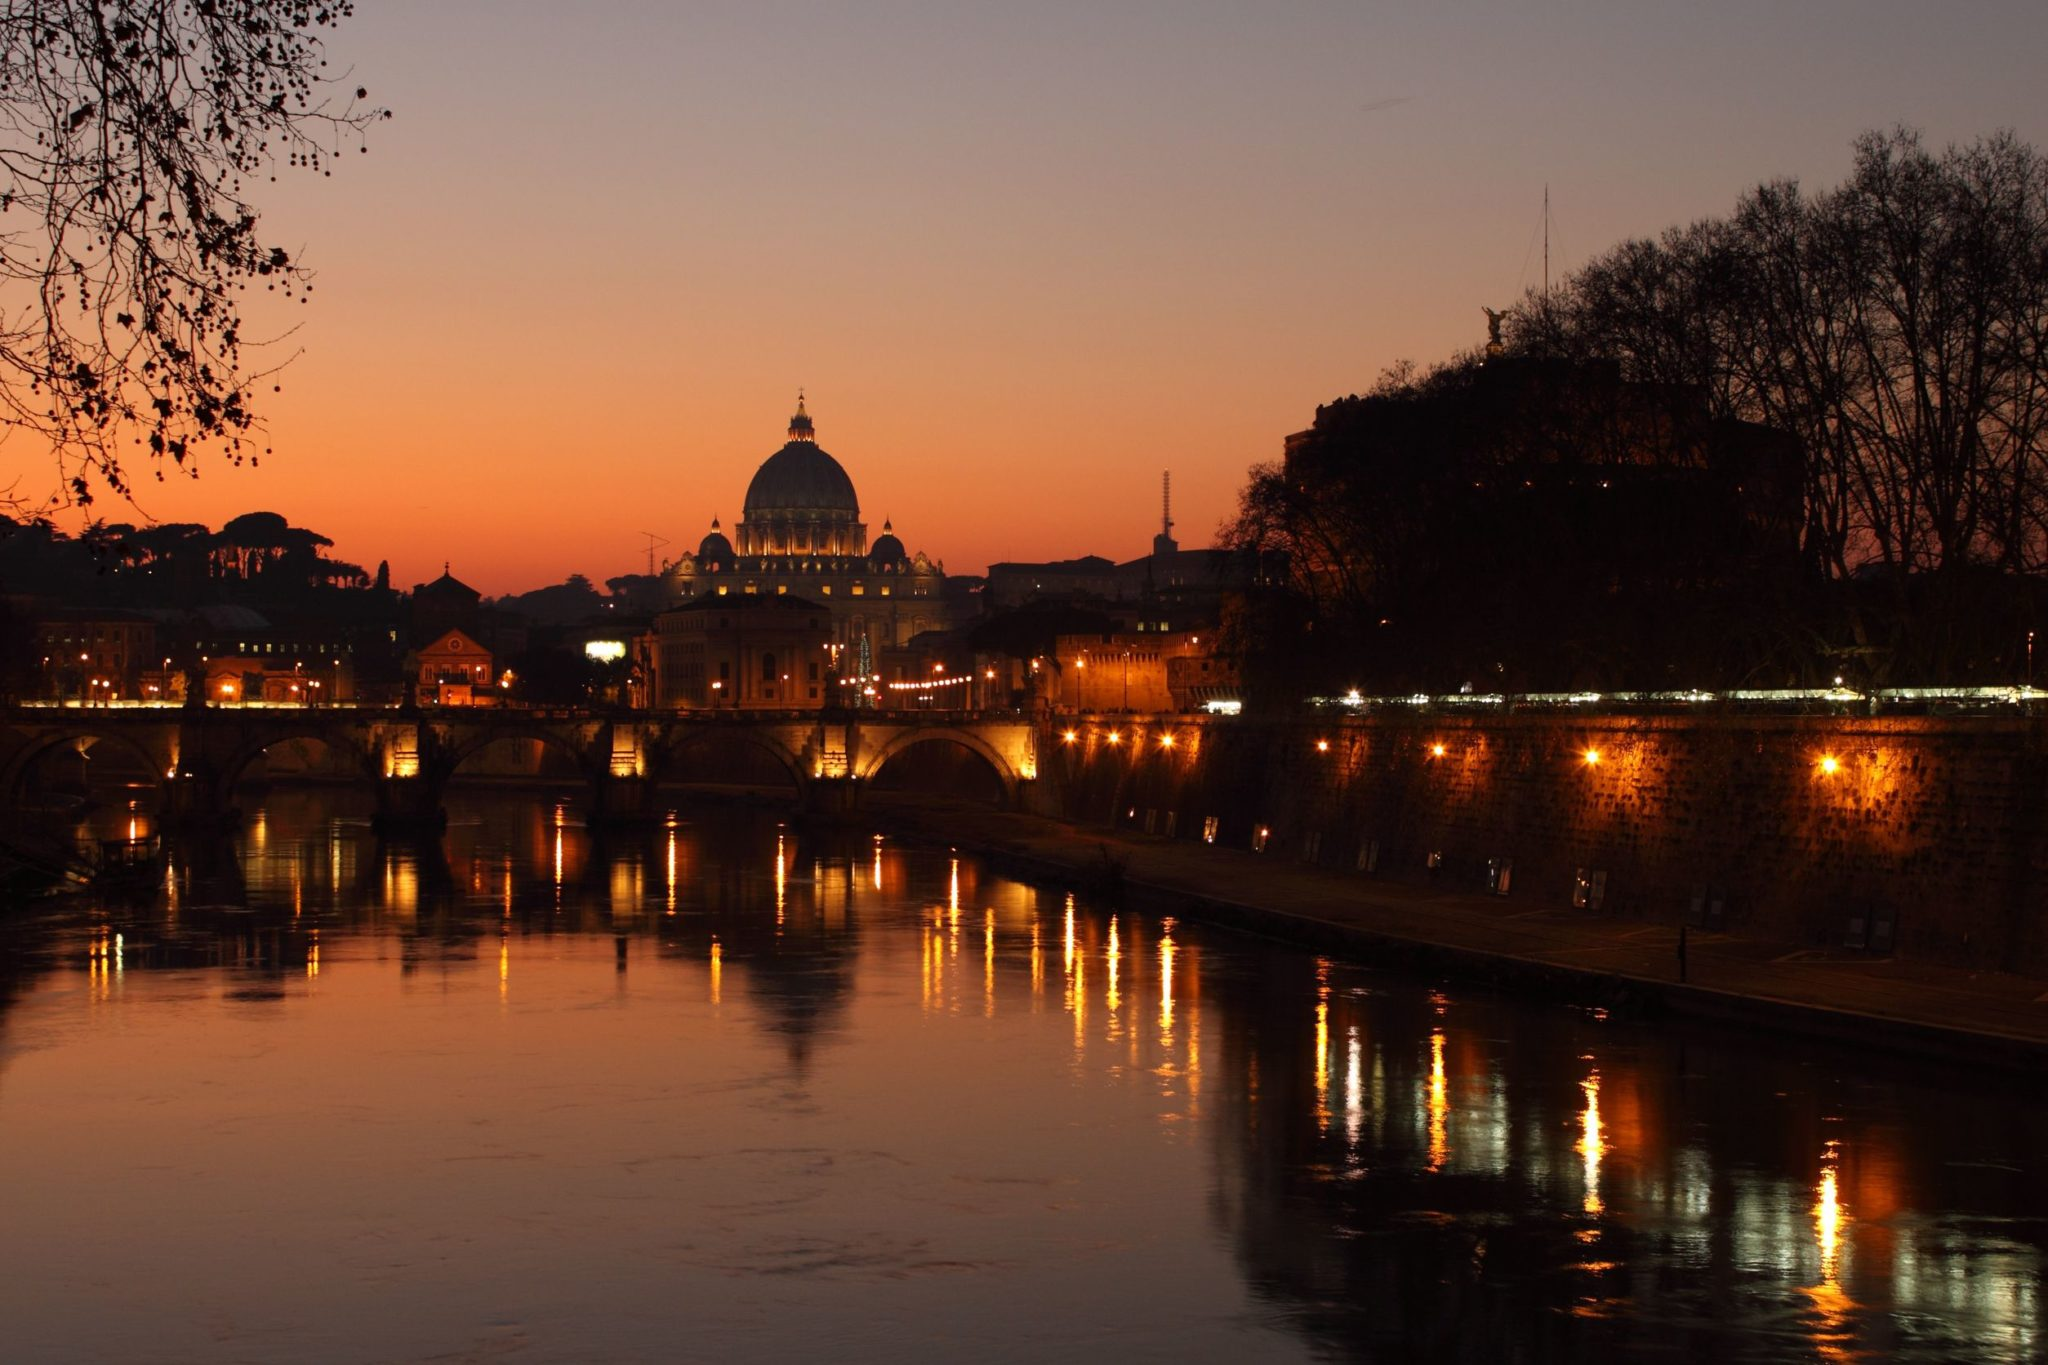 St. Peter's Basilica along the Tiber River near Castel Sant'Angelo in Rome, Italy